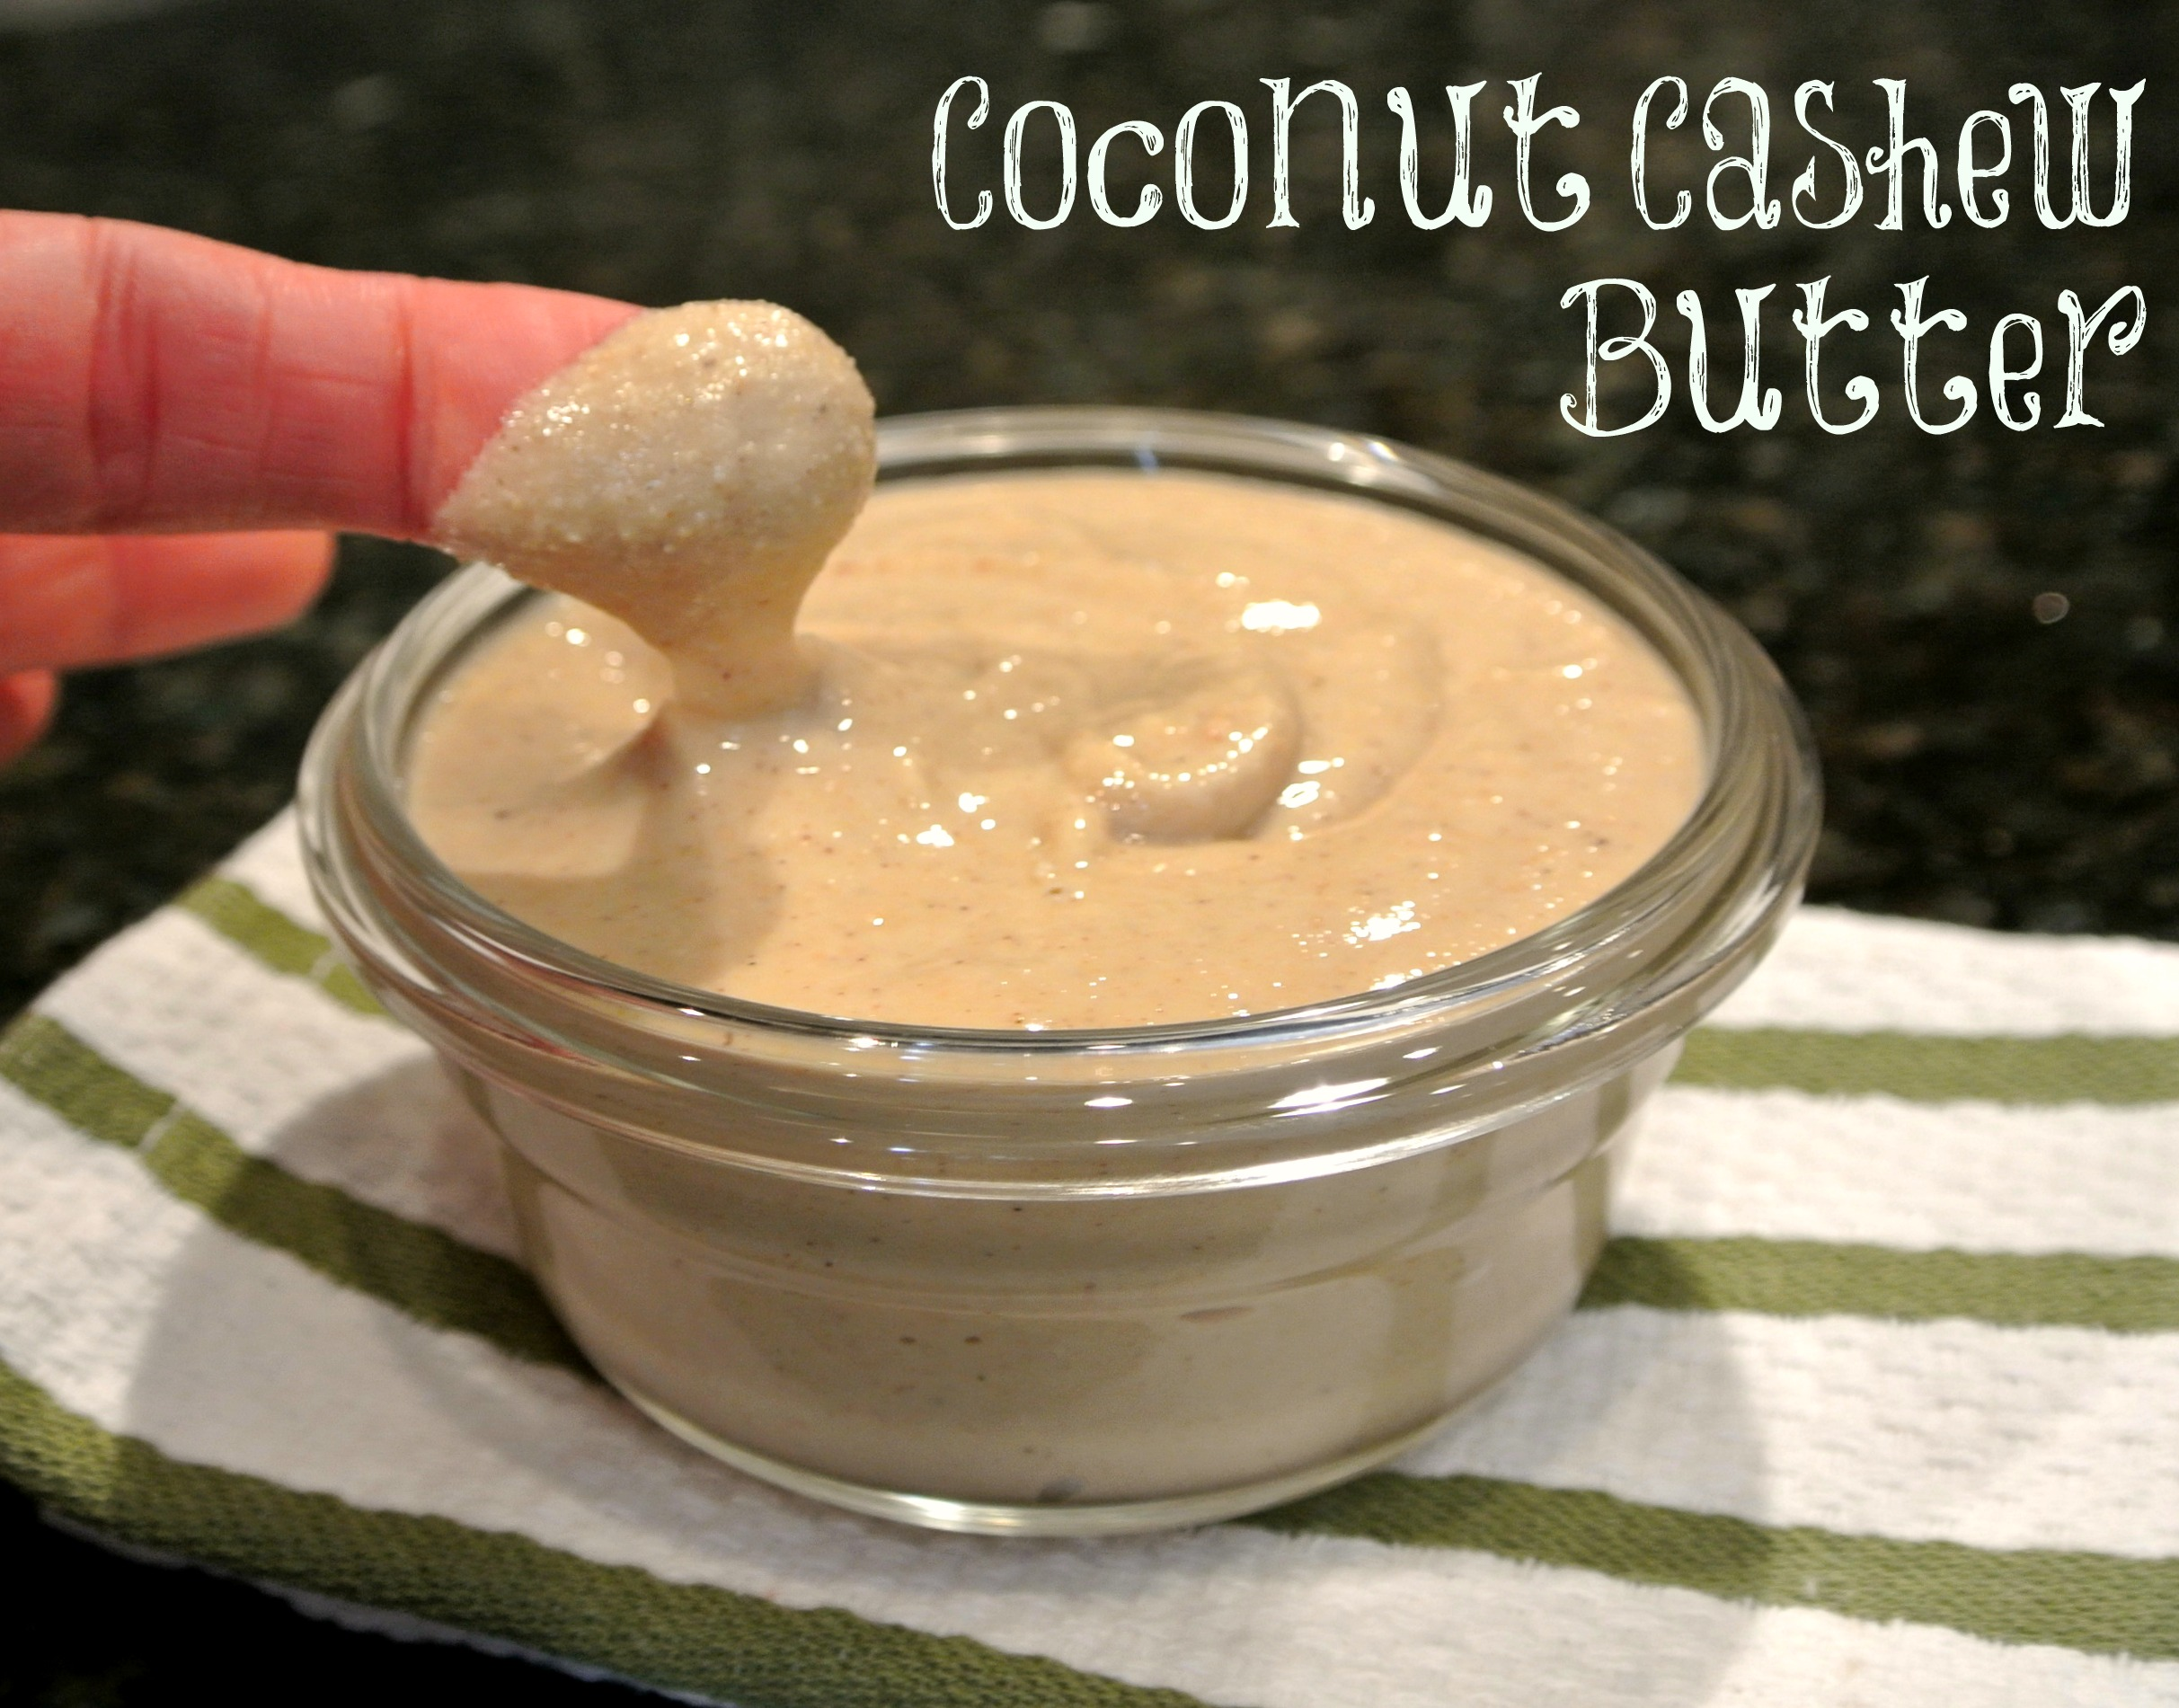 Substituting Coconut Oil For Butter - Can Coconut Oil Be Substituted For Butter In Cookies?